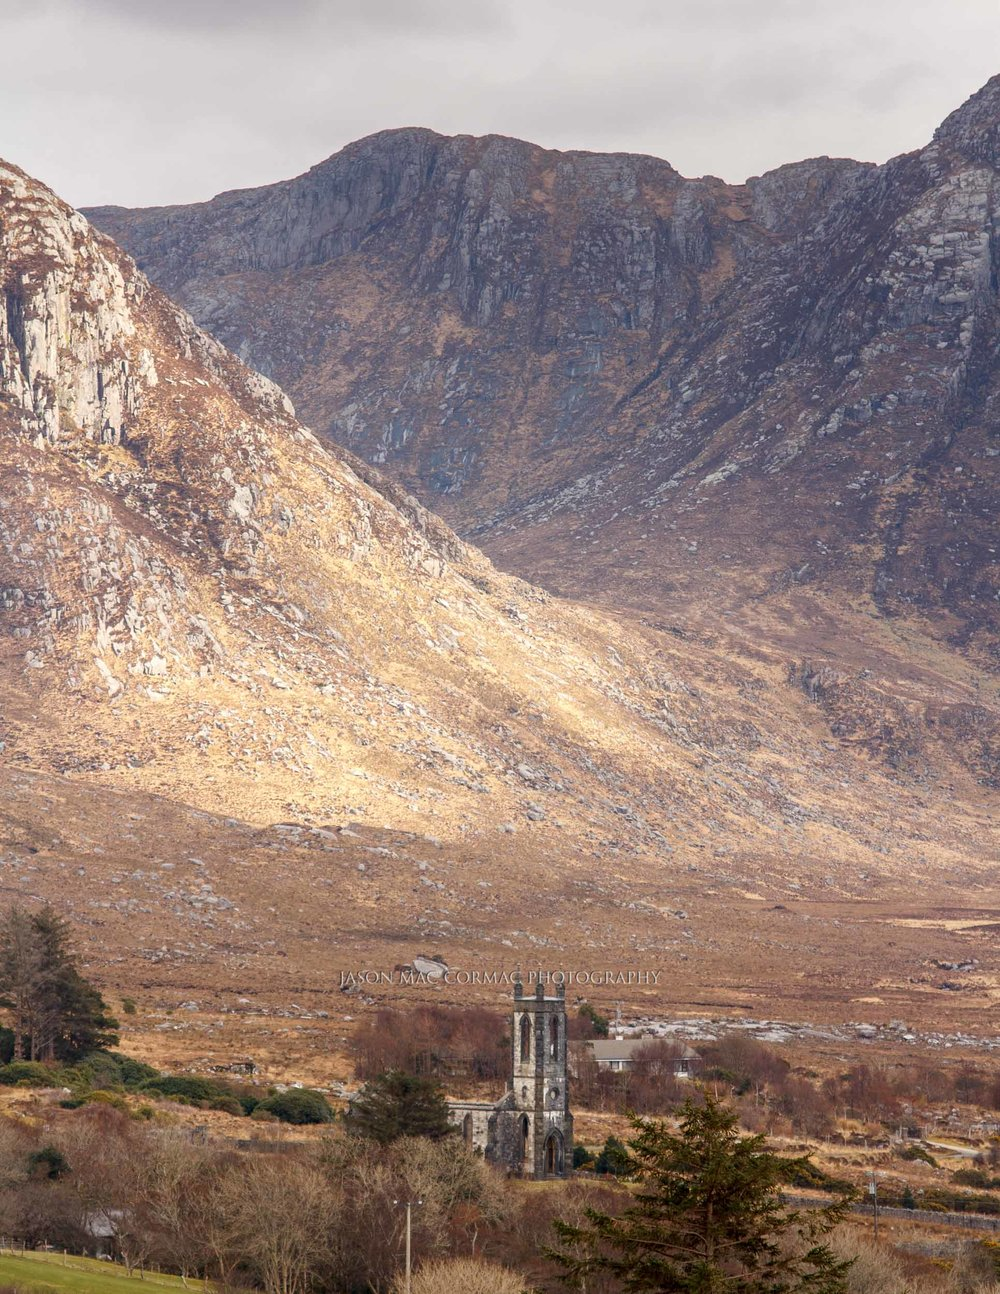 Dunlewey, County Donegal